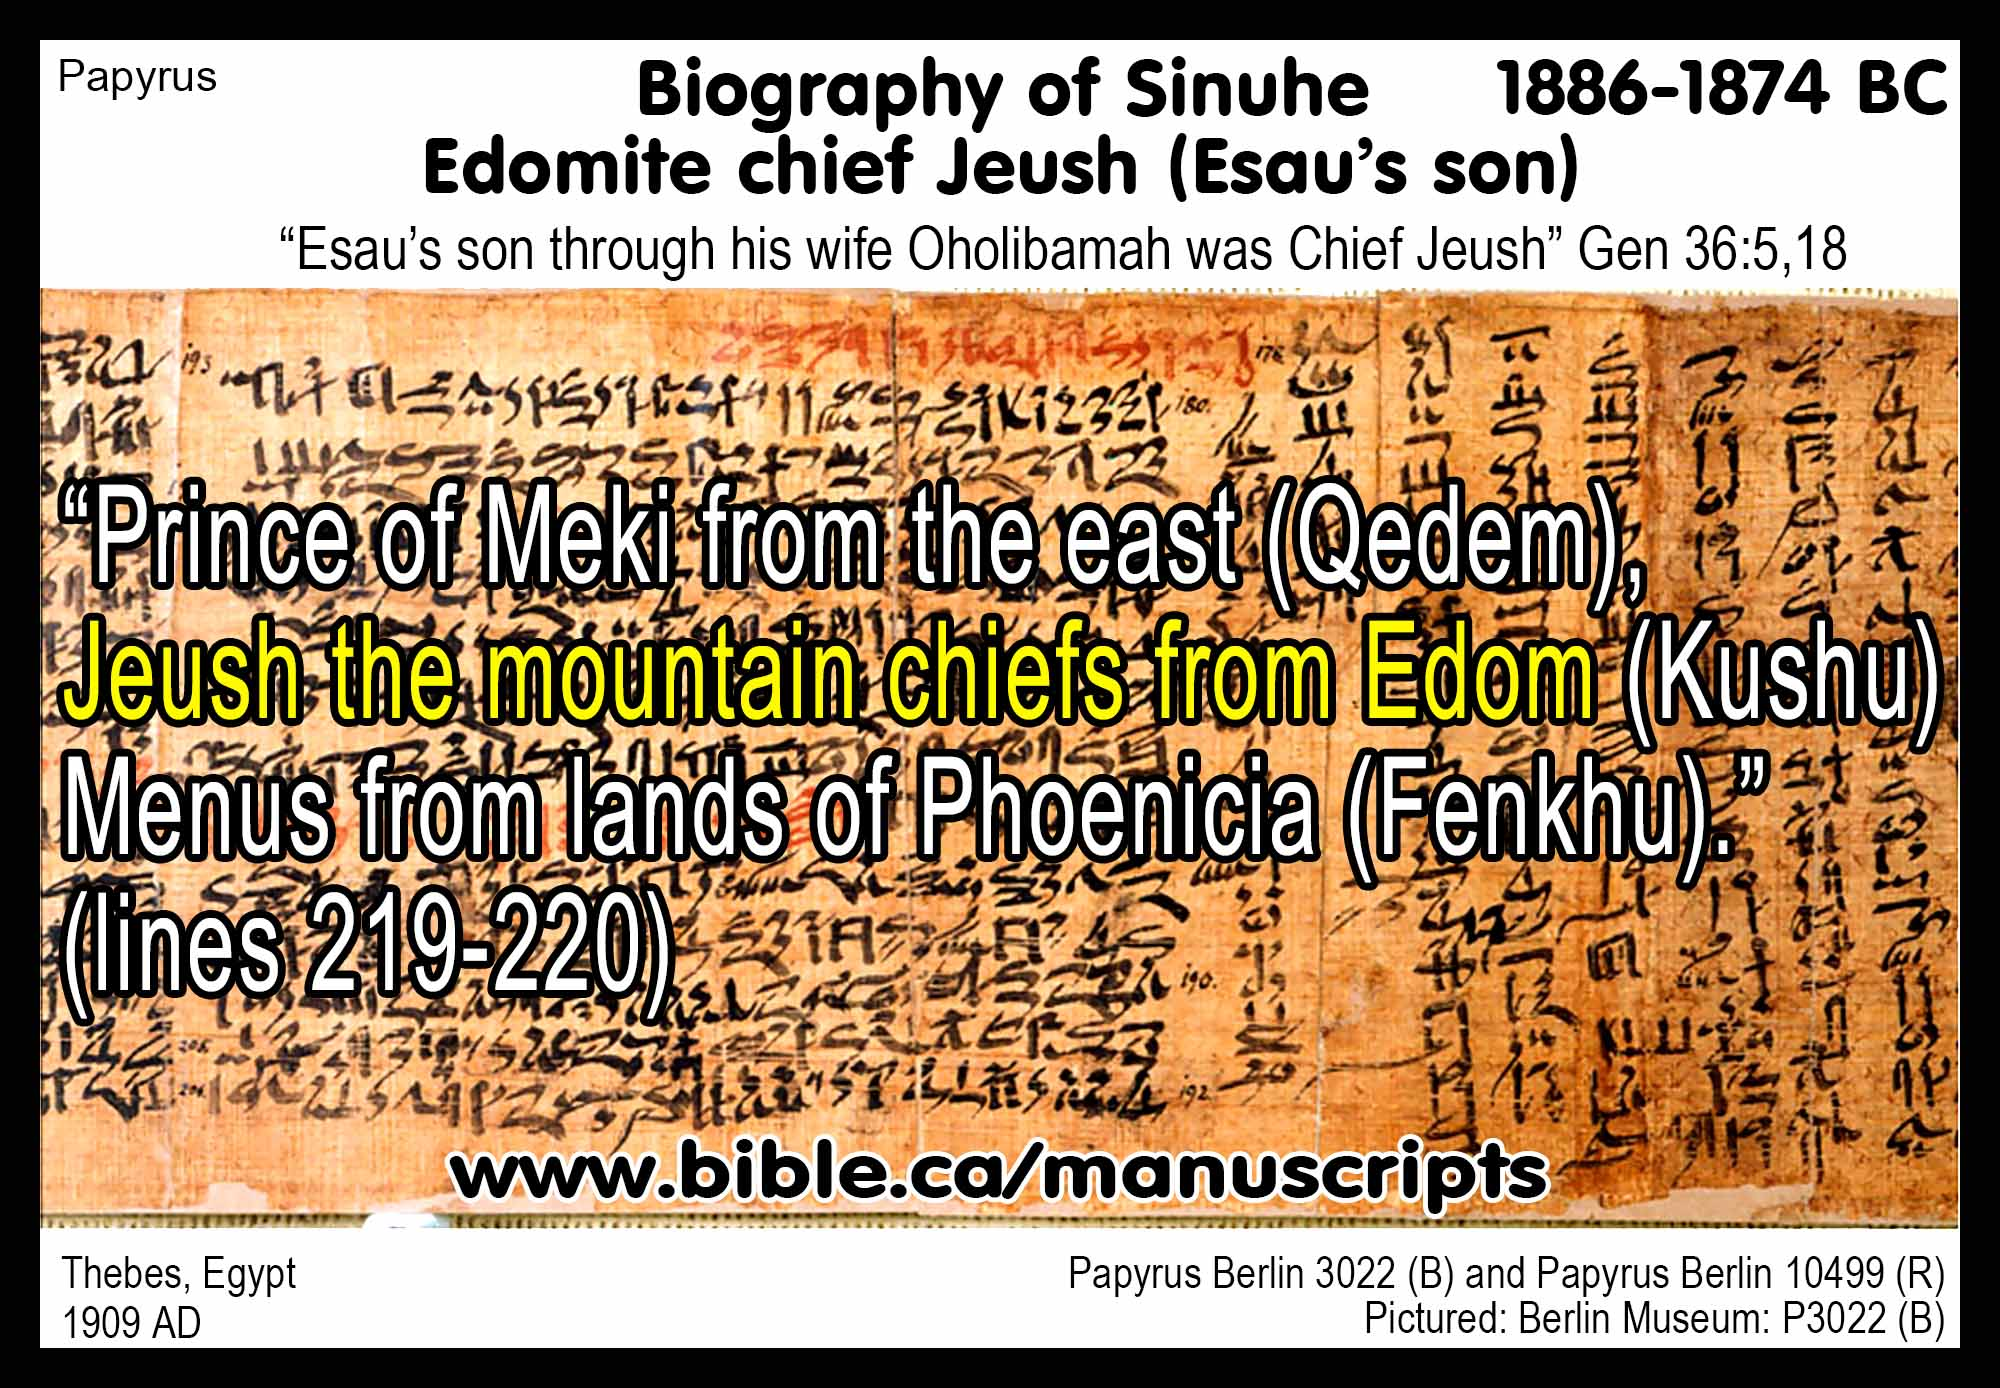 the story of sinuhe confirms gen 36 15 18 in 1900 bc